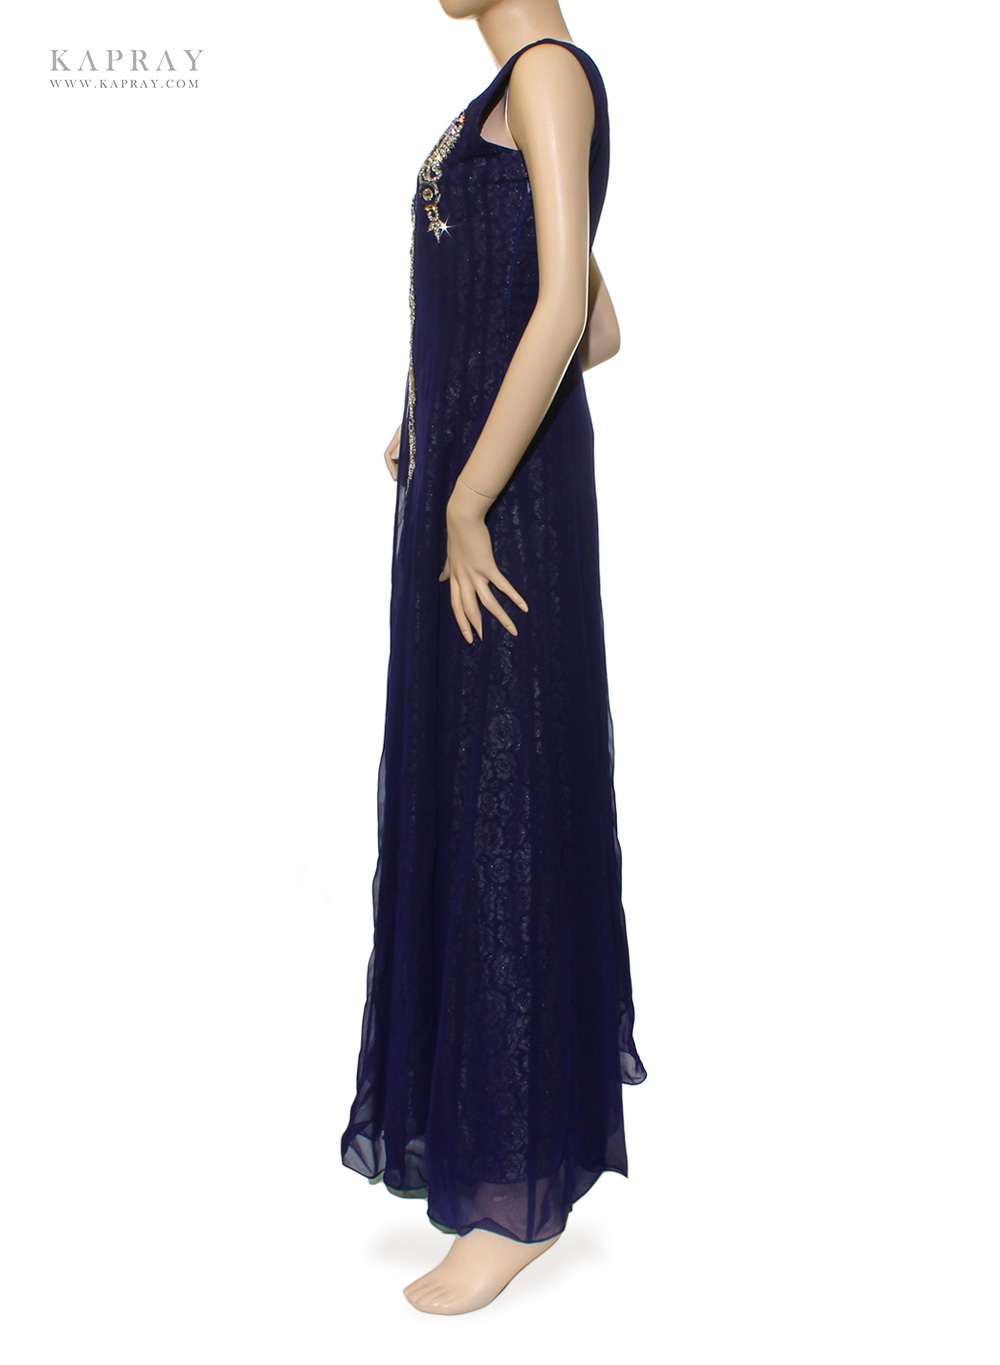 Bridal maxi dress in navy blue kapray for Navy blue maxi dress for wedding